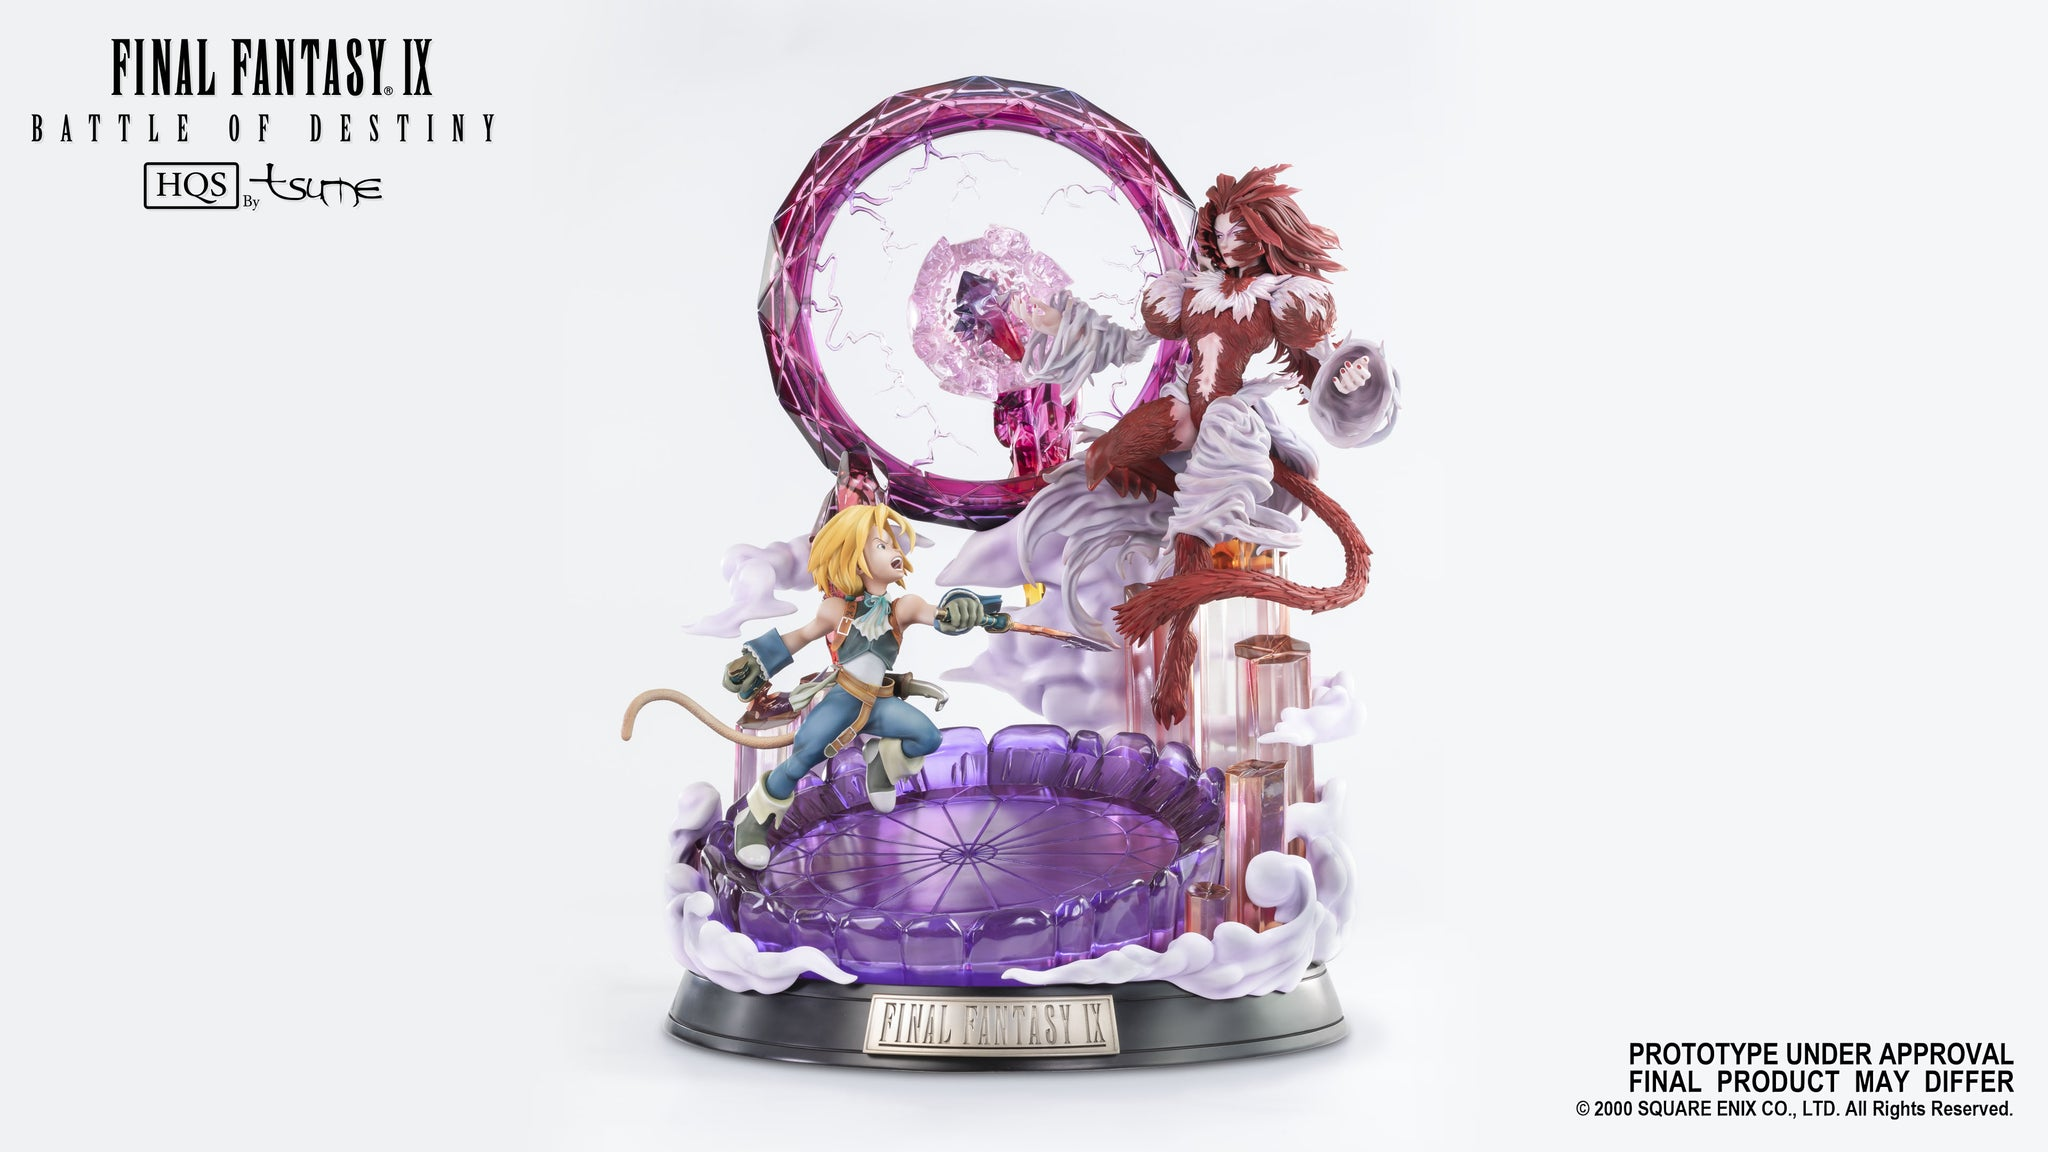 【已截訂】Tsume FINAL FANTASY IX - BATTLE OF DESTINY 1/8 Statue